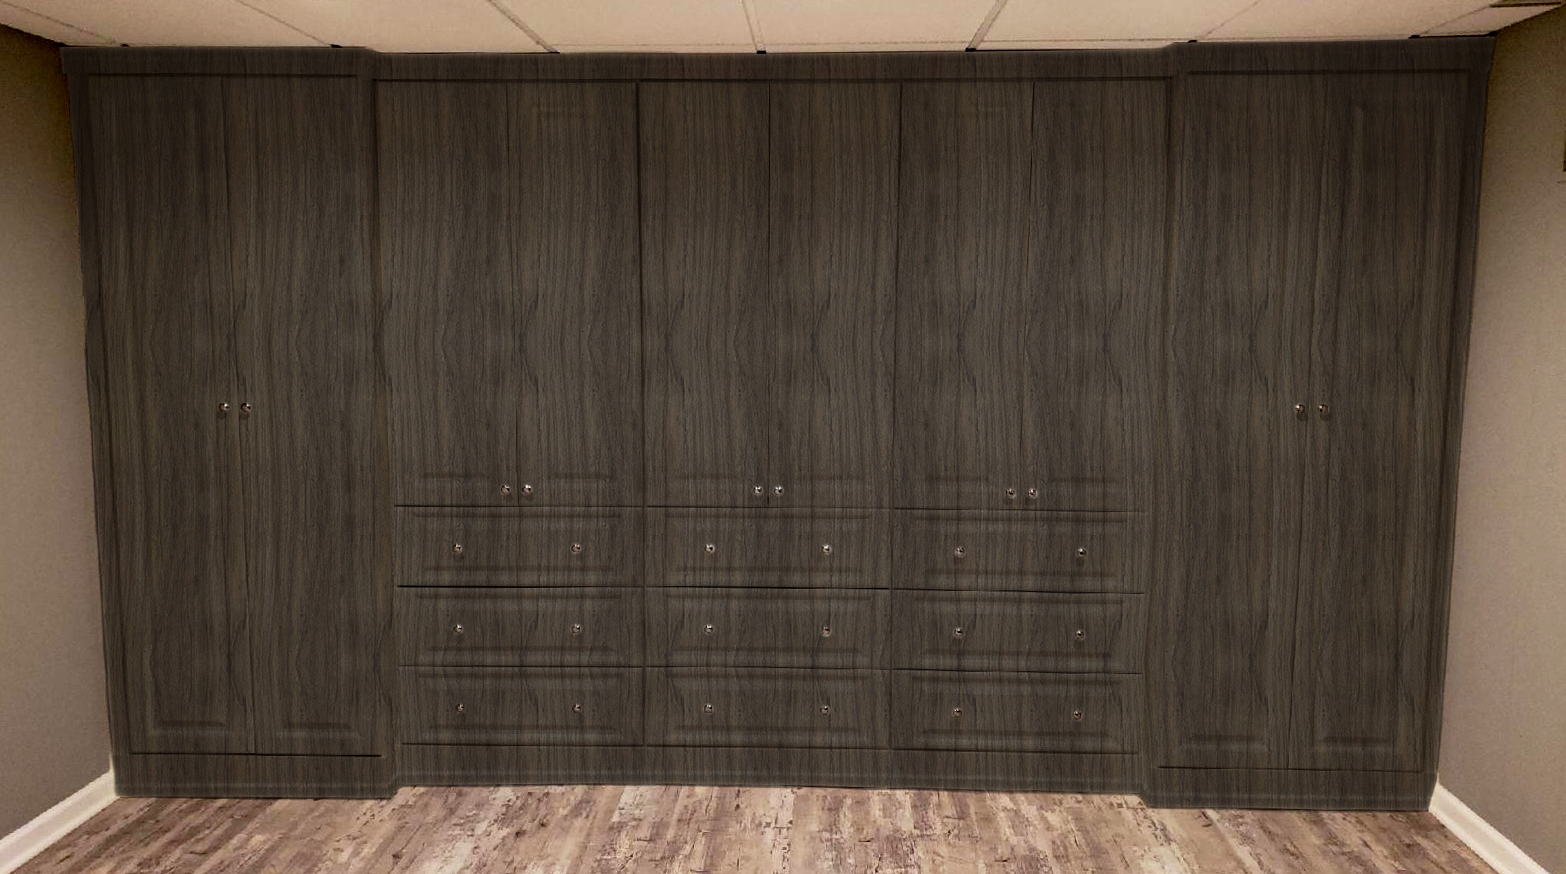 After Hours swatch : Custom laminate shelving and storage offering by Innovative Closet Designs